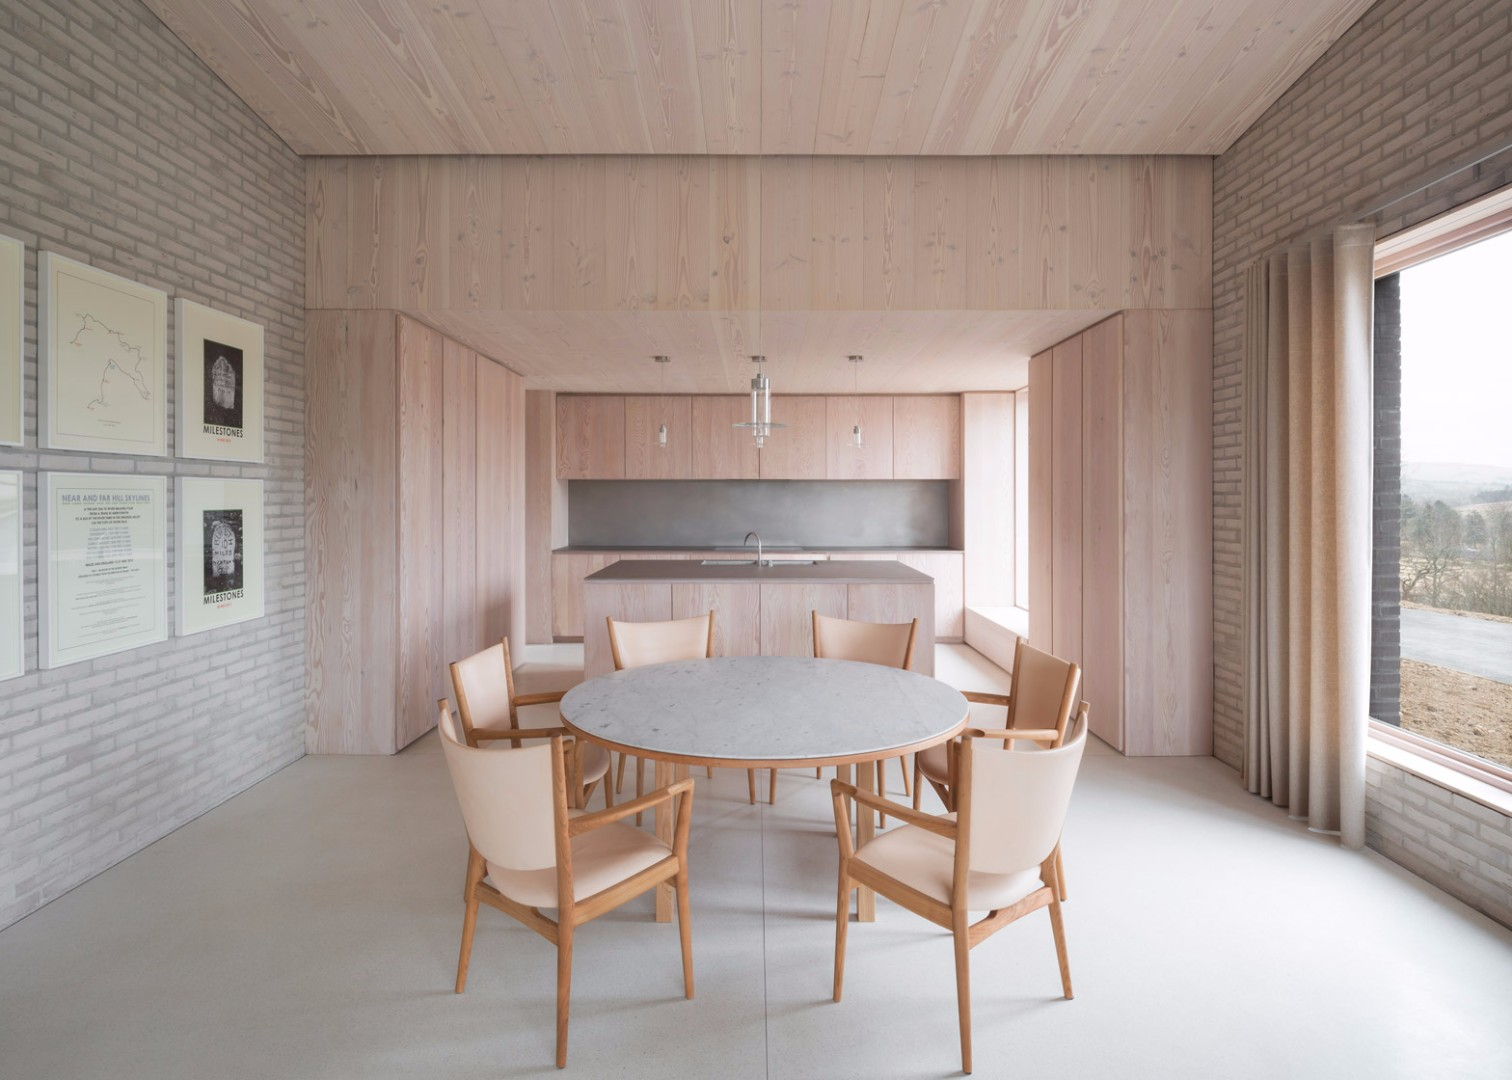 life-house-john-pawson-living-architecture-retreat-residential-brick-wales-uk-gilbert-mccarragher_dezeen_1568_3.jpg